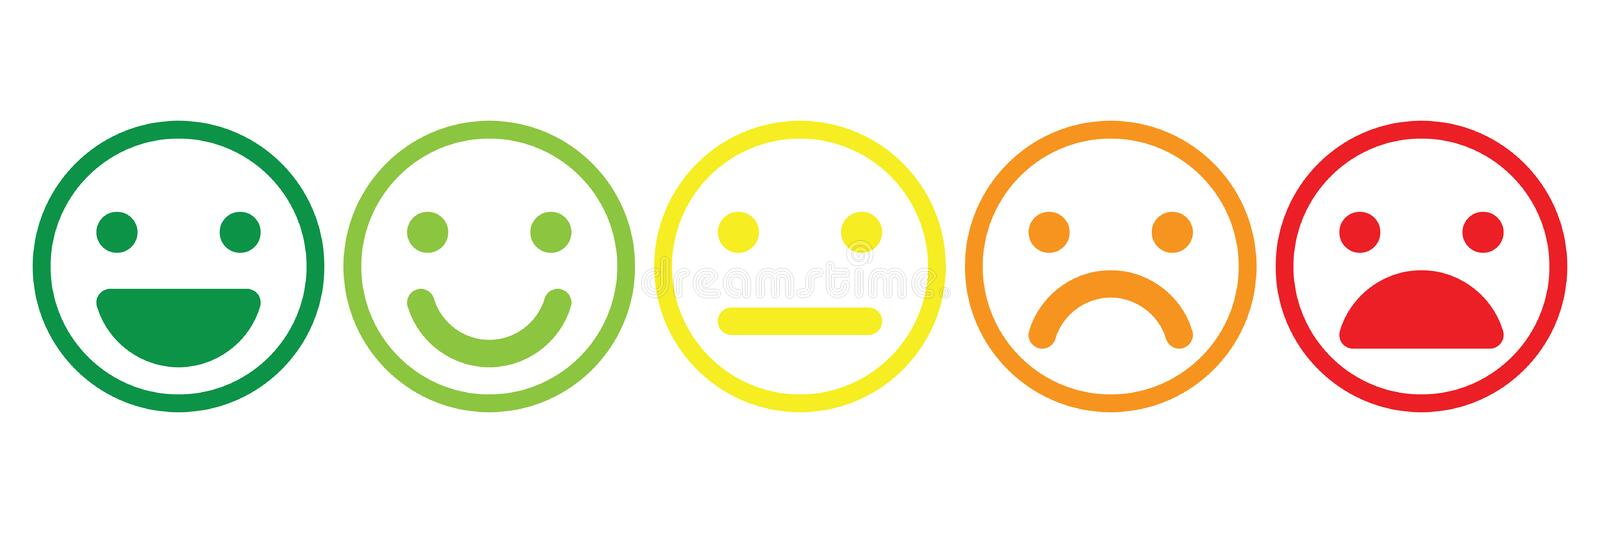 Basic emoticons set. Five facial expression of feedback scale - from positive to negative. Simple colored vector icons.  stock illustration